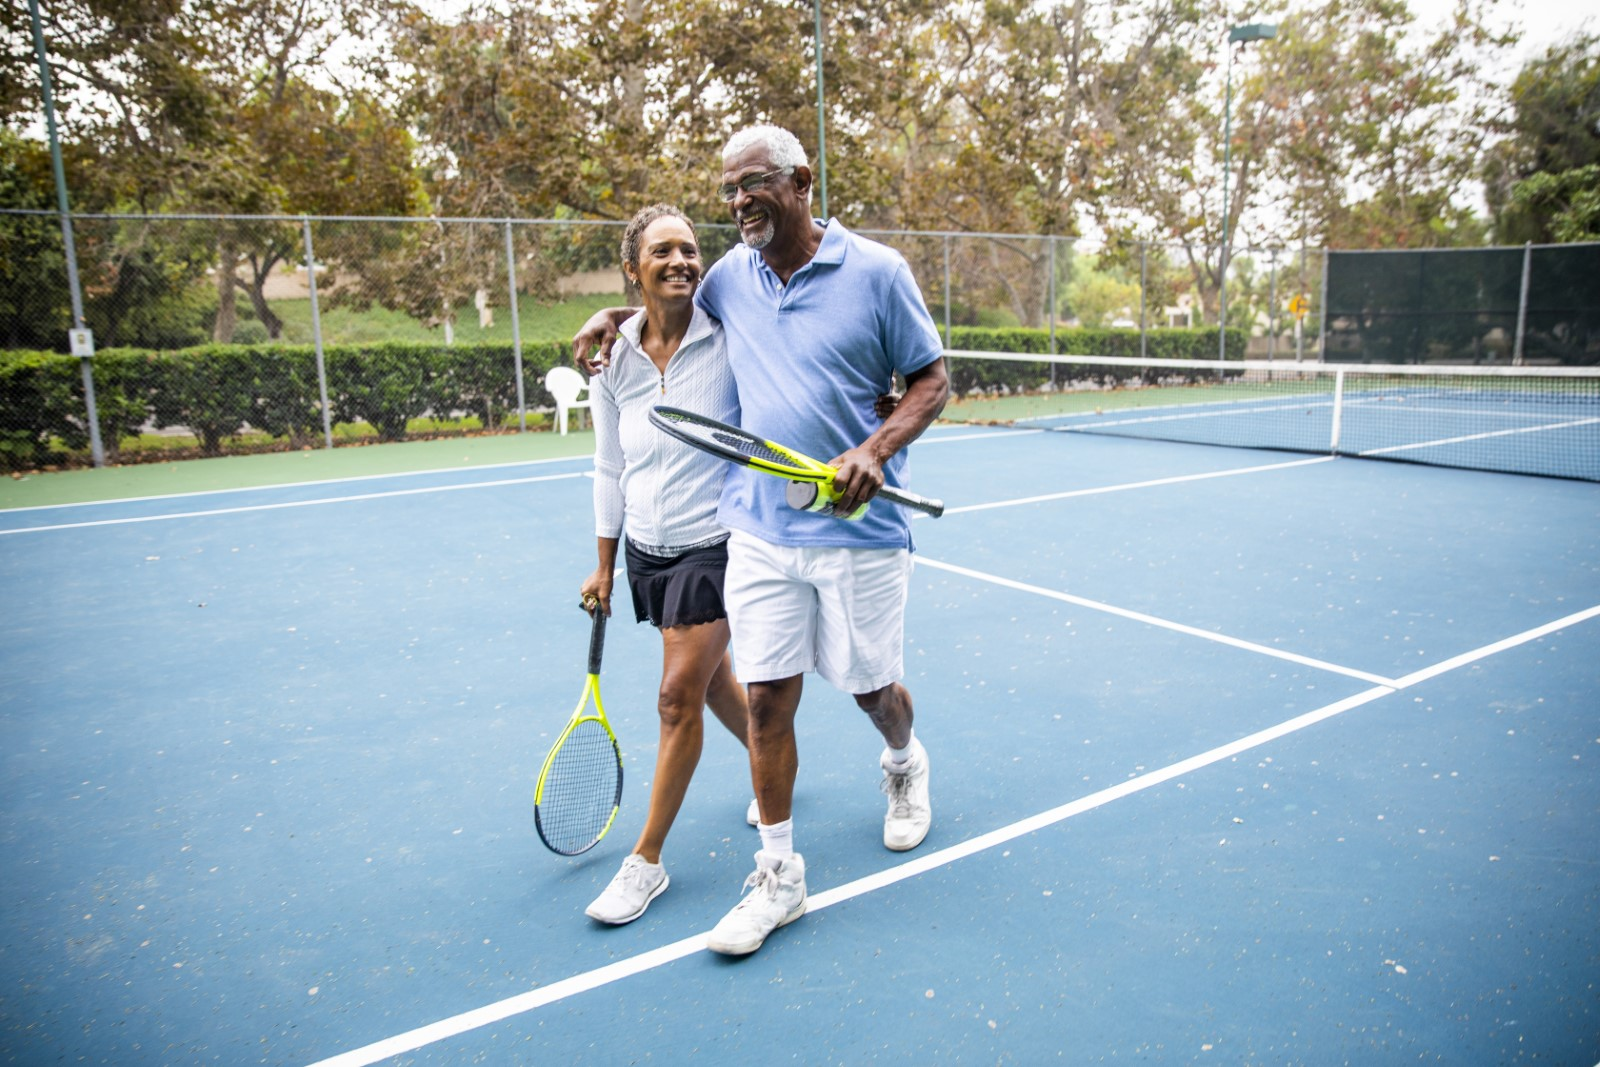 A senior black couple leaving the tennis court after their workout.